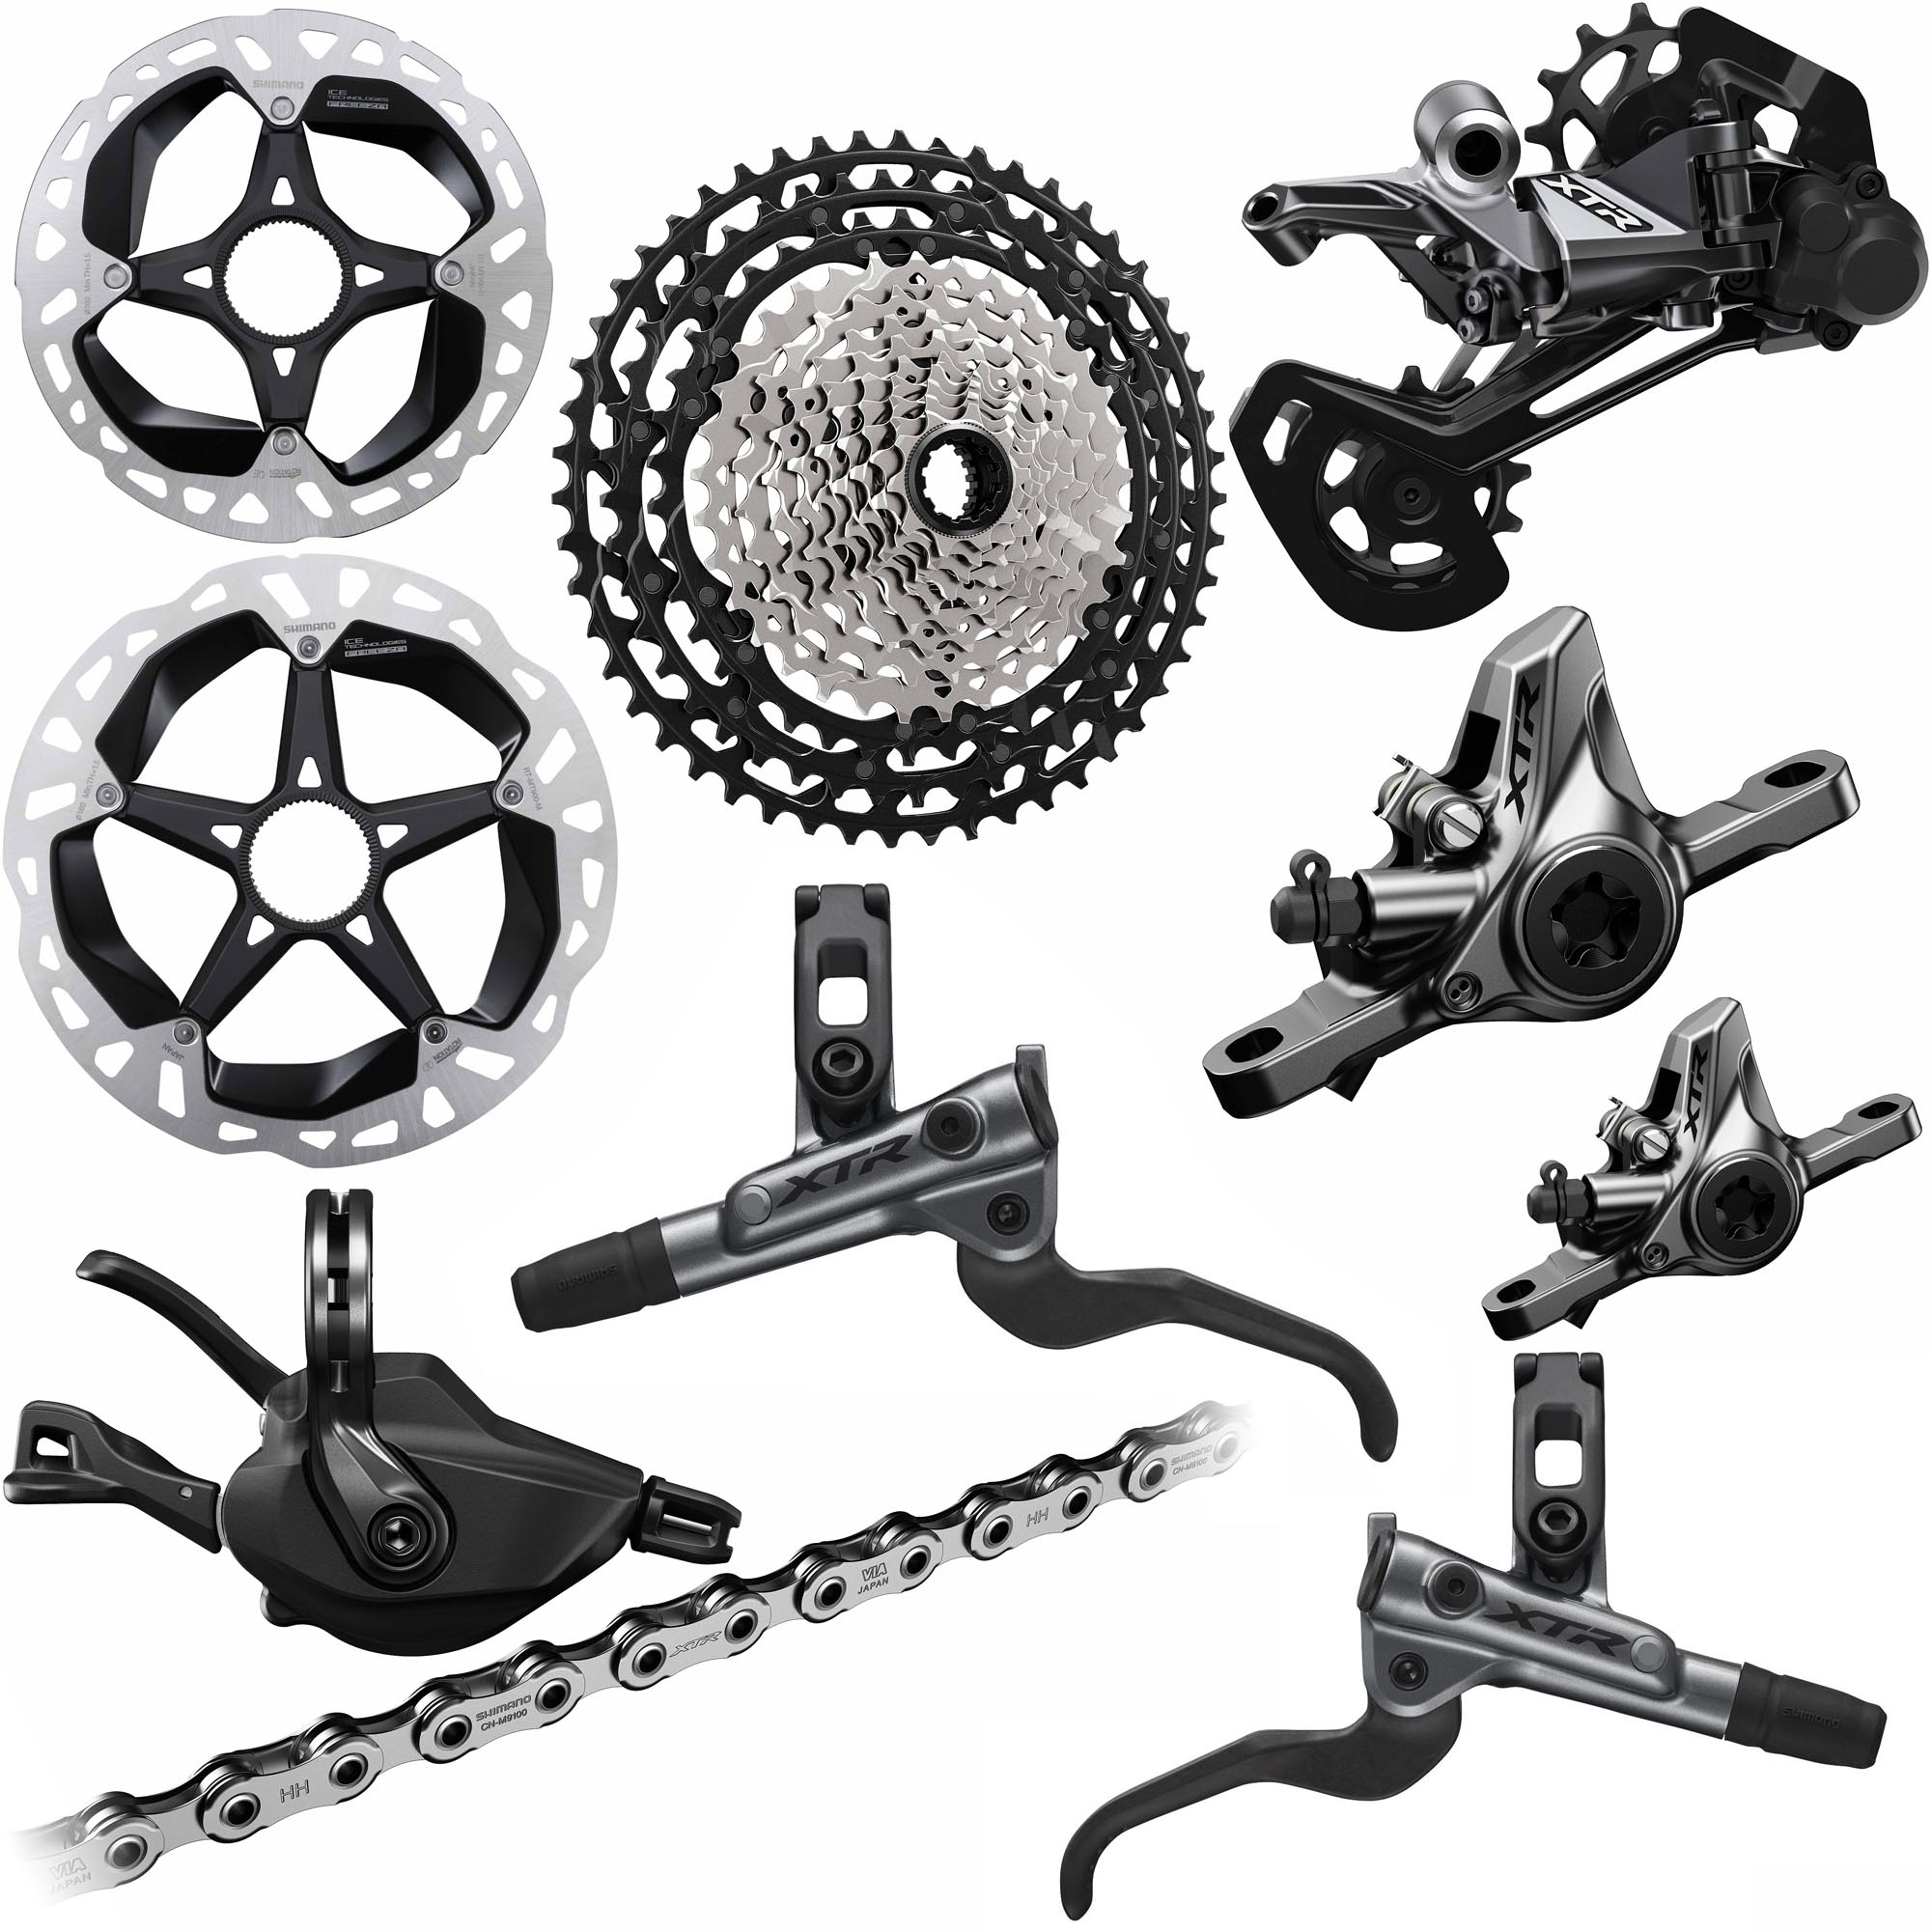 65a8cbc6fa2 Wiggle | Shimano M9100 XTR 1x12 Groupset | Groupsets